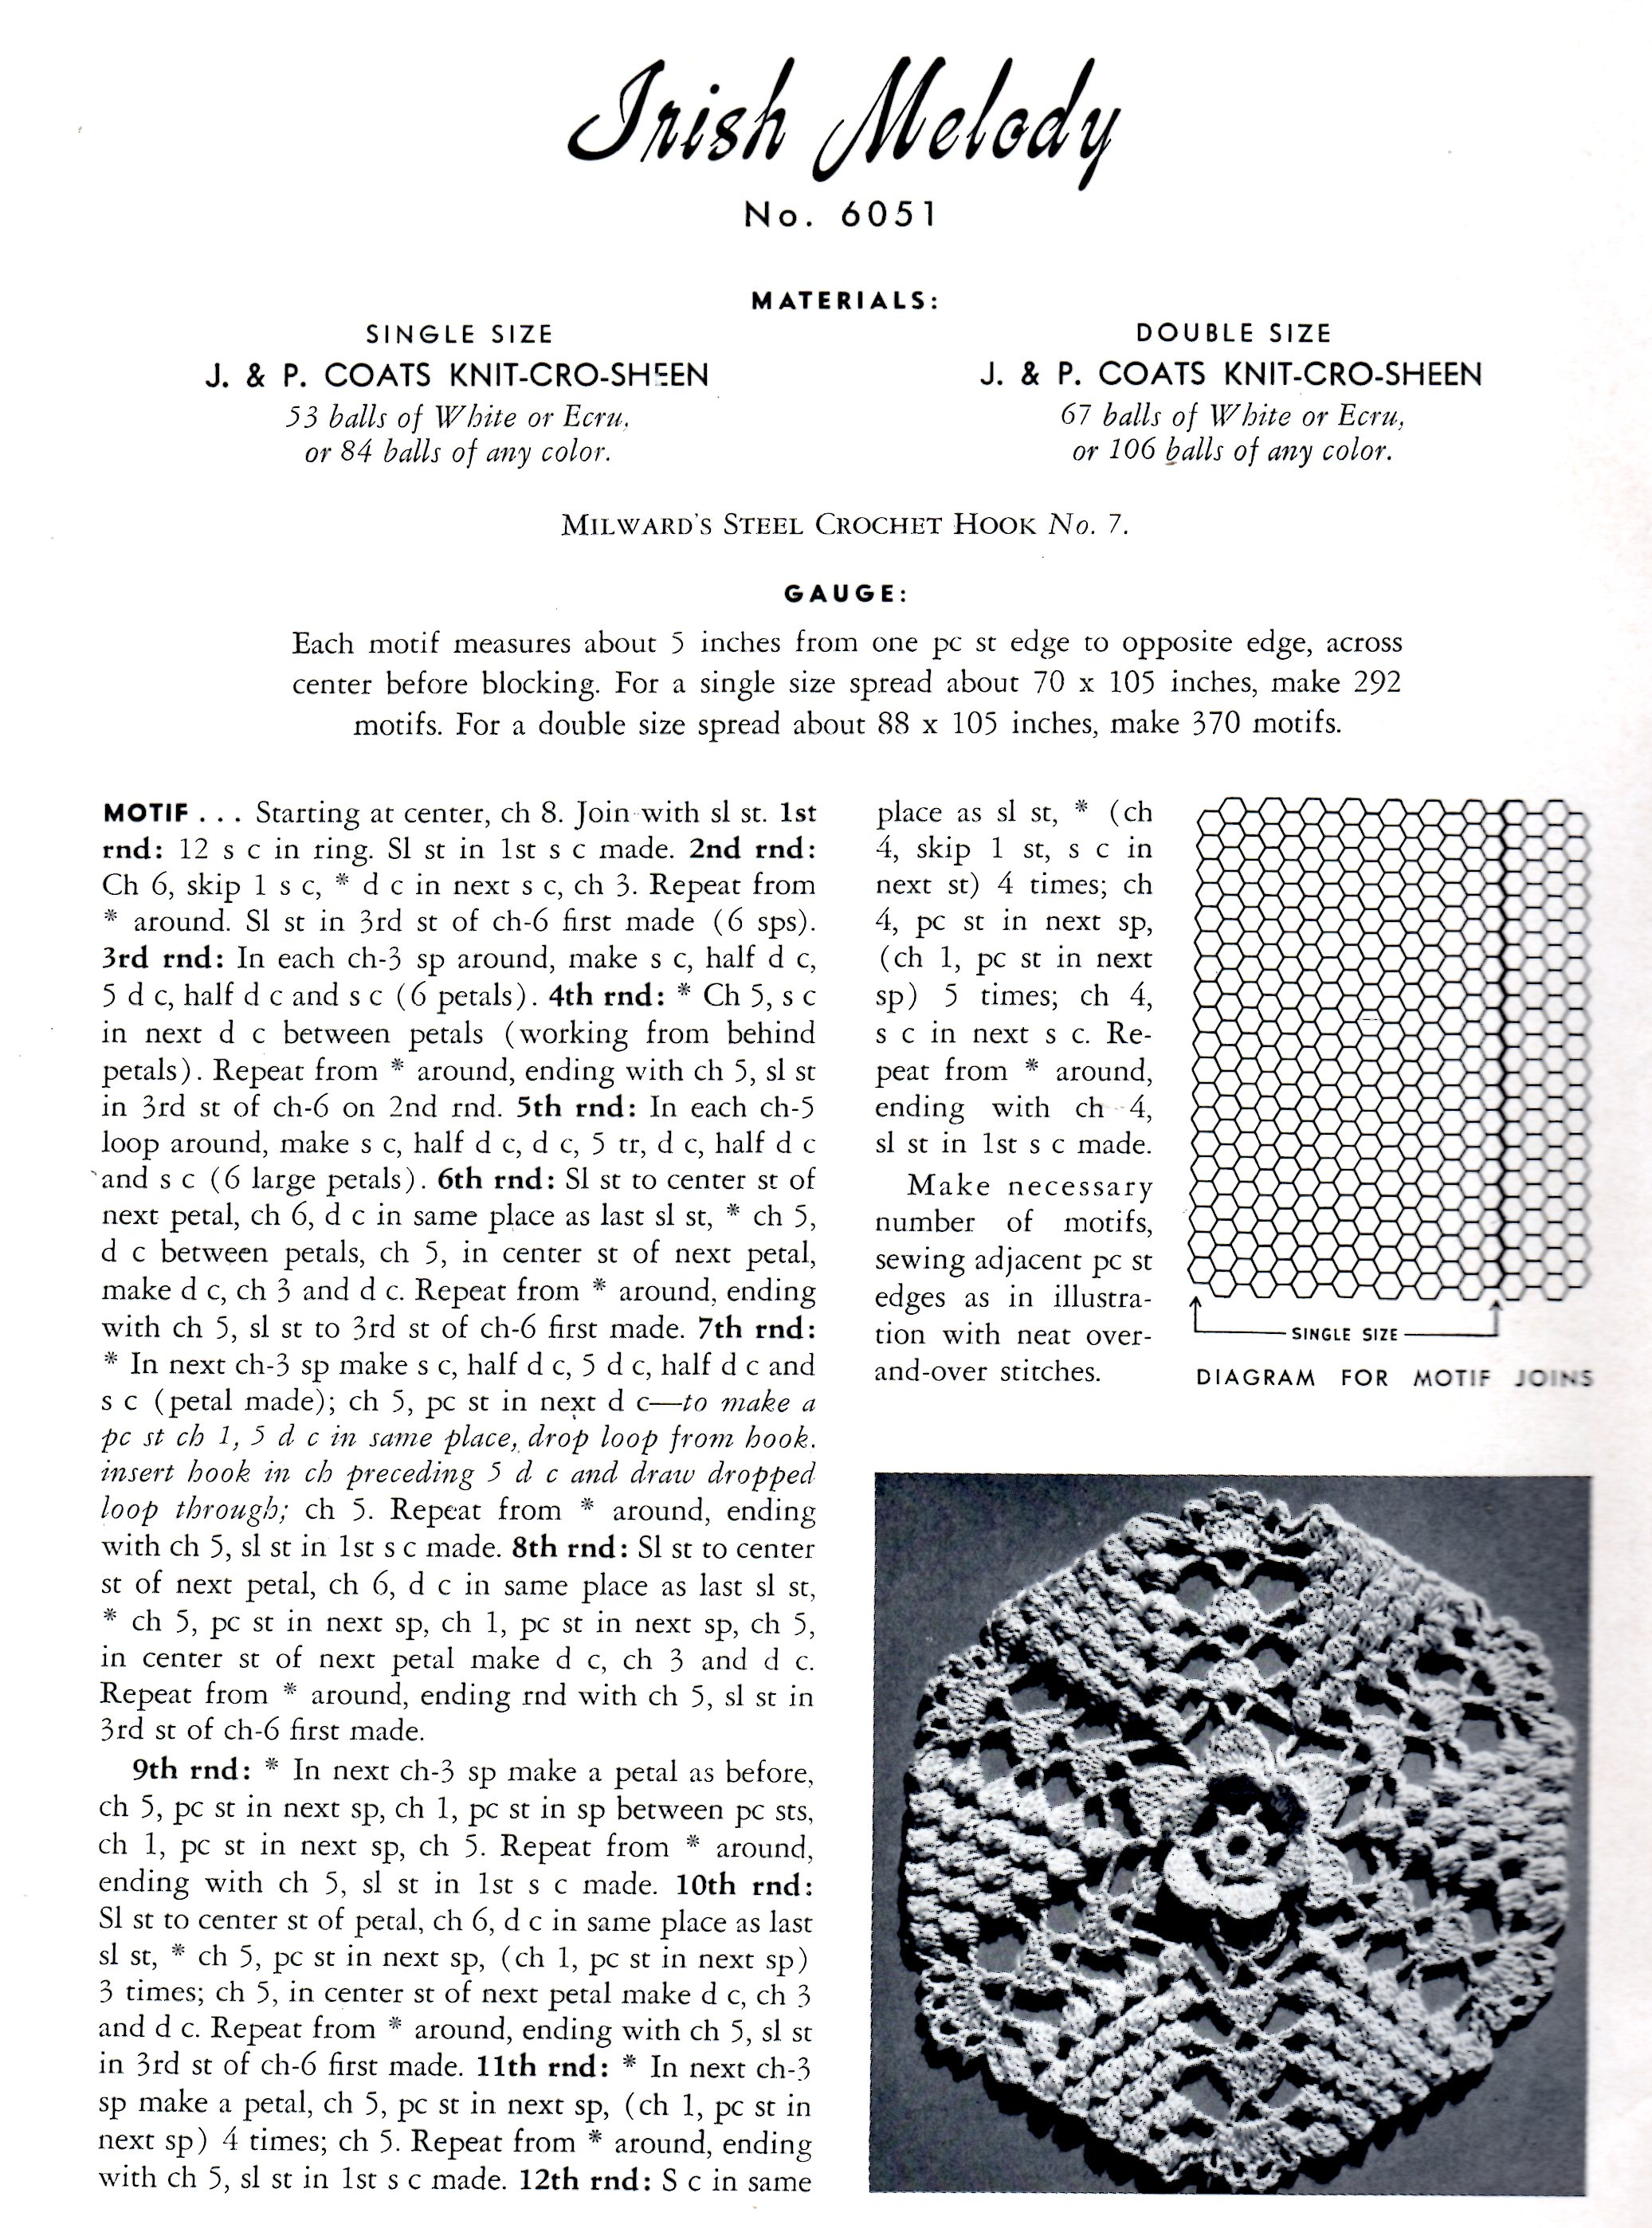 Jp Coats Archives Vintage Crafts And More Crochet Pattern Diagram Irish Melody Bedspread